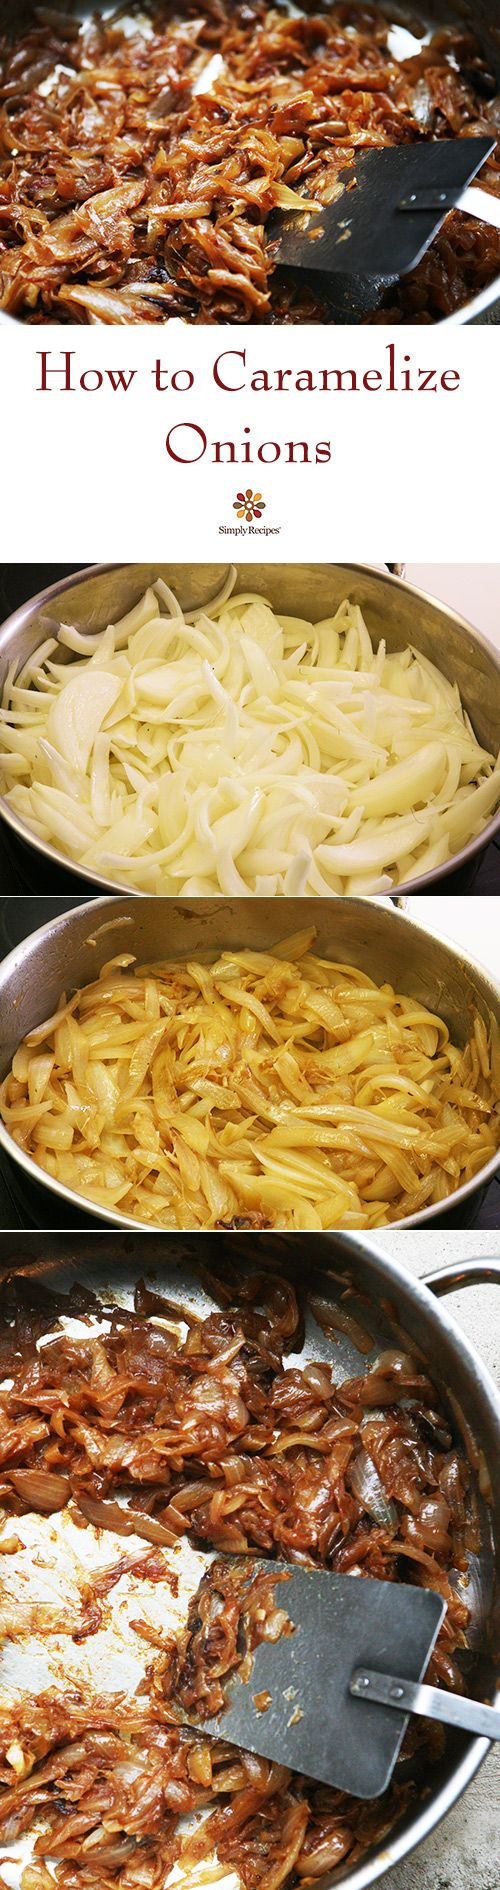 Caramelized onions add magic to any dish that uses onions. Here's an easy tutorial on how to make them! On SimplyRecipes.com